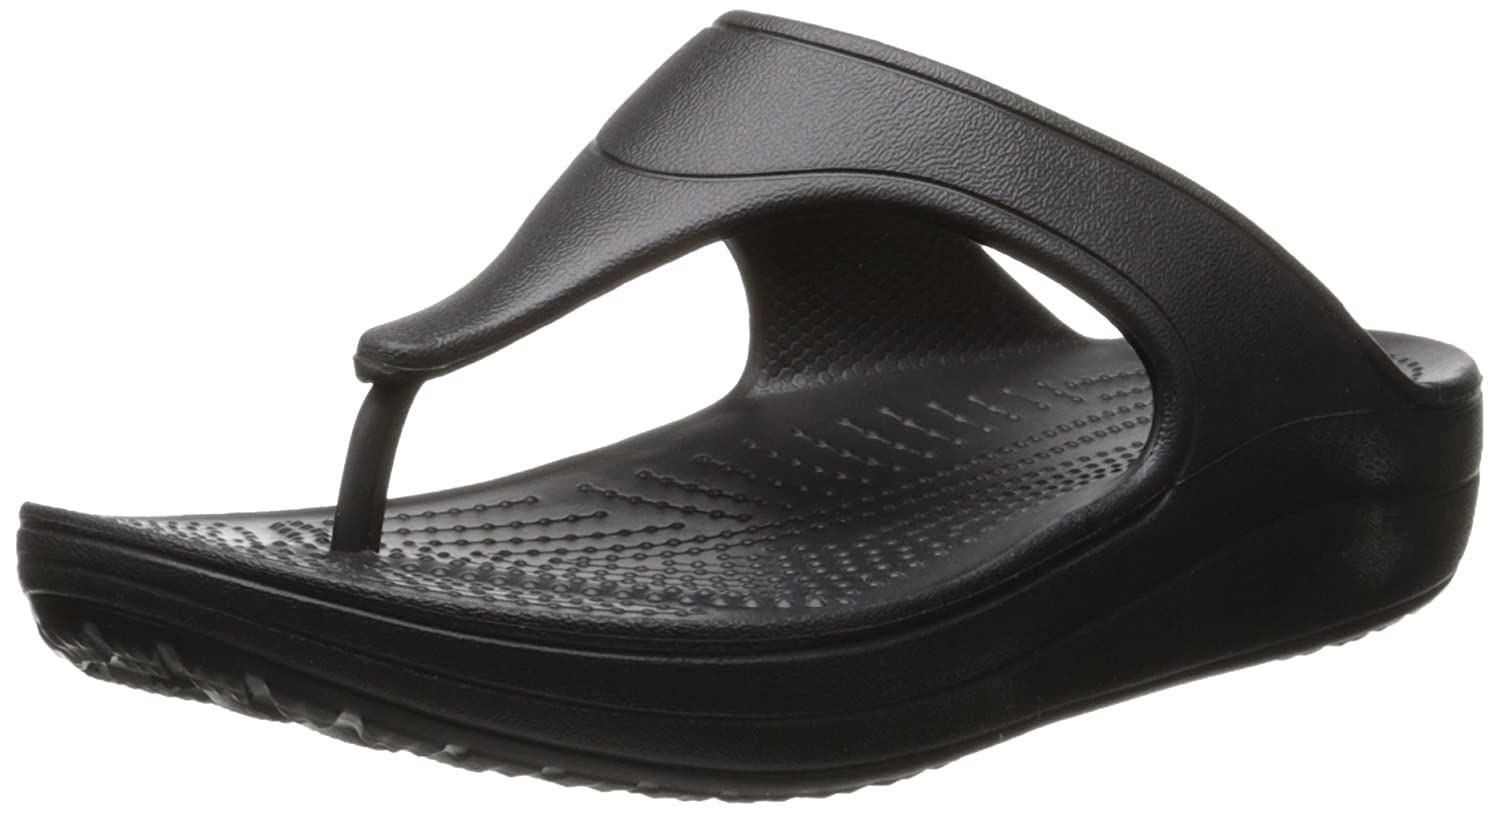 b58eebce51a699 Crocs Women Sloane Platform Flip Flops  Amazon.co.uk  Shoes   Bags